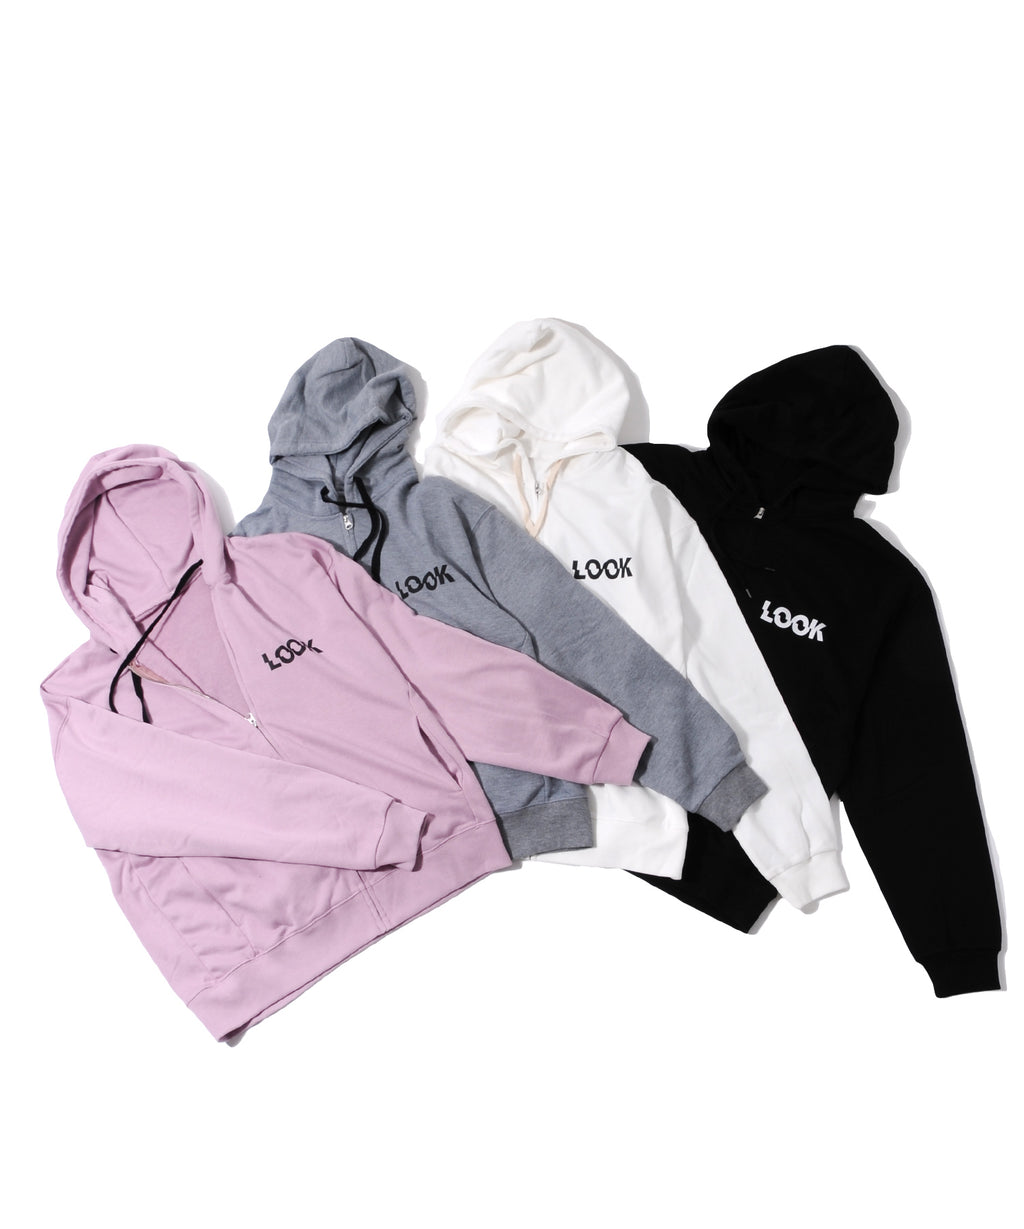 BULLISH Fleece Loose Fit Zipup Hoodie